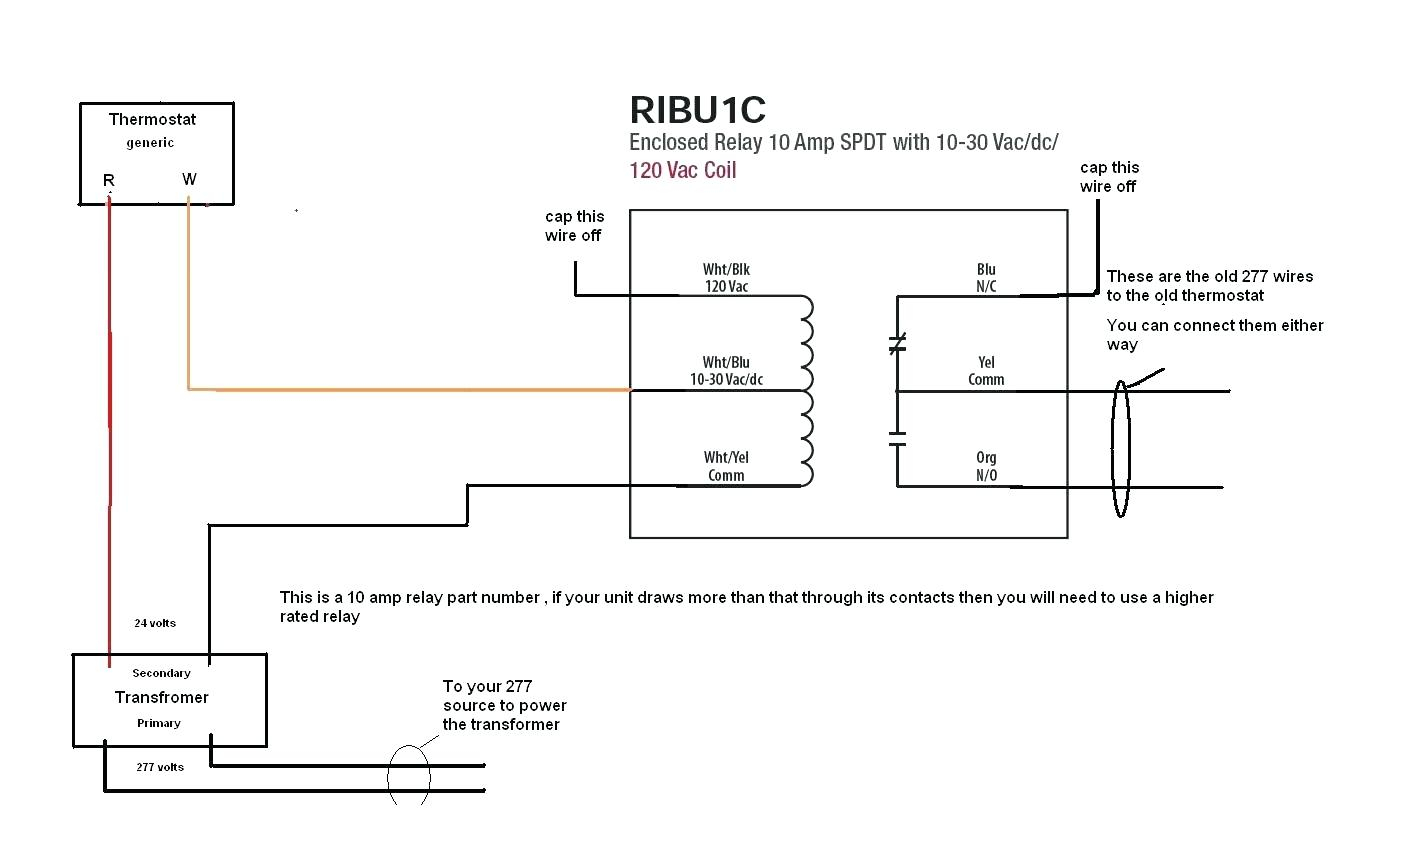 immersion heater wiring diagram samsung security camera chromalox sample